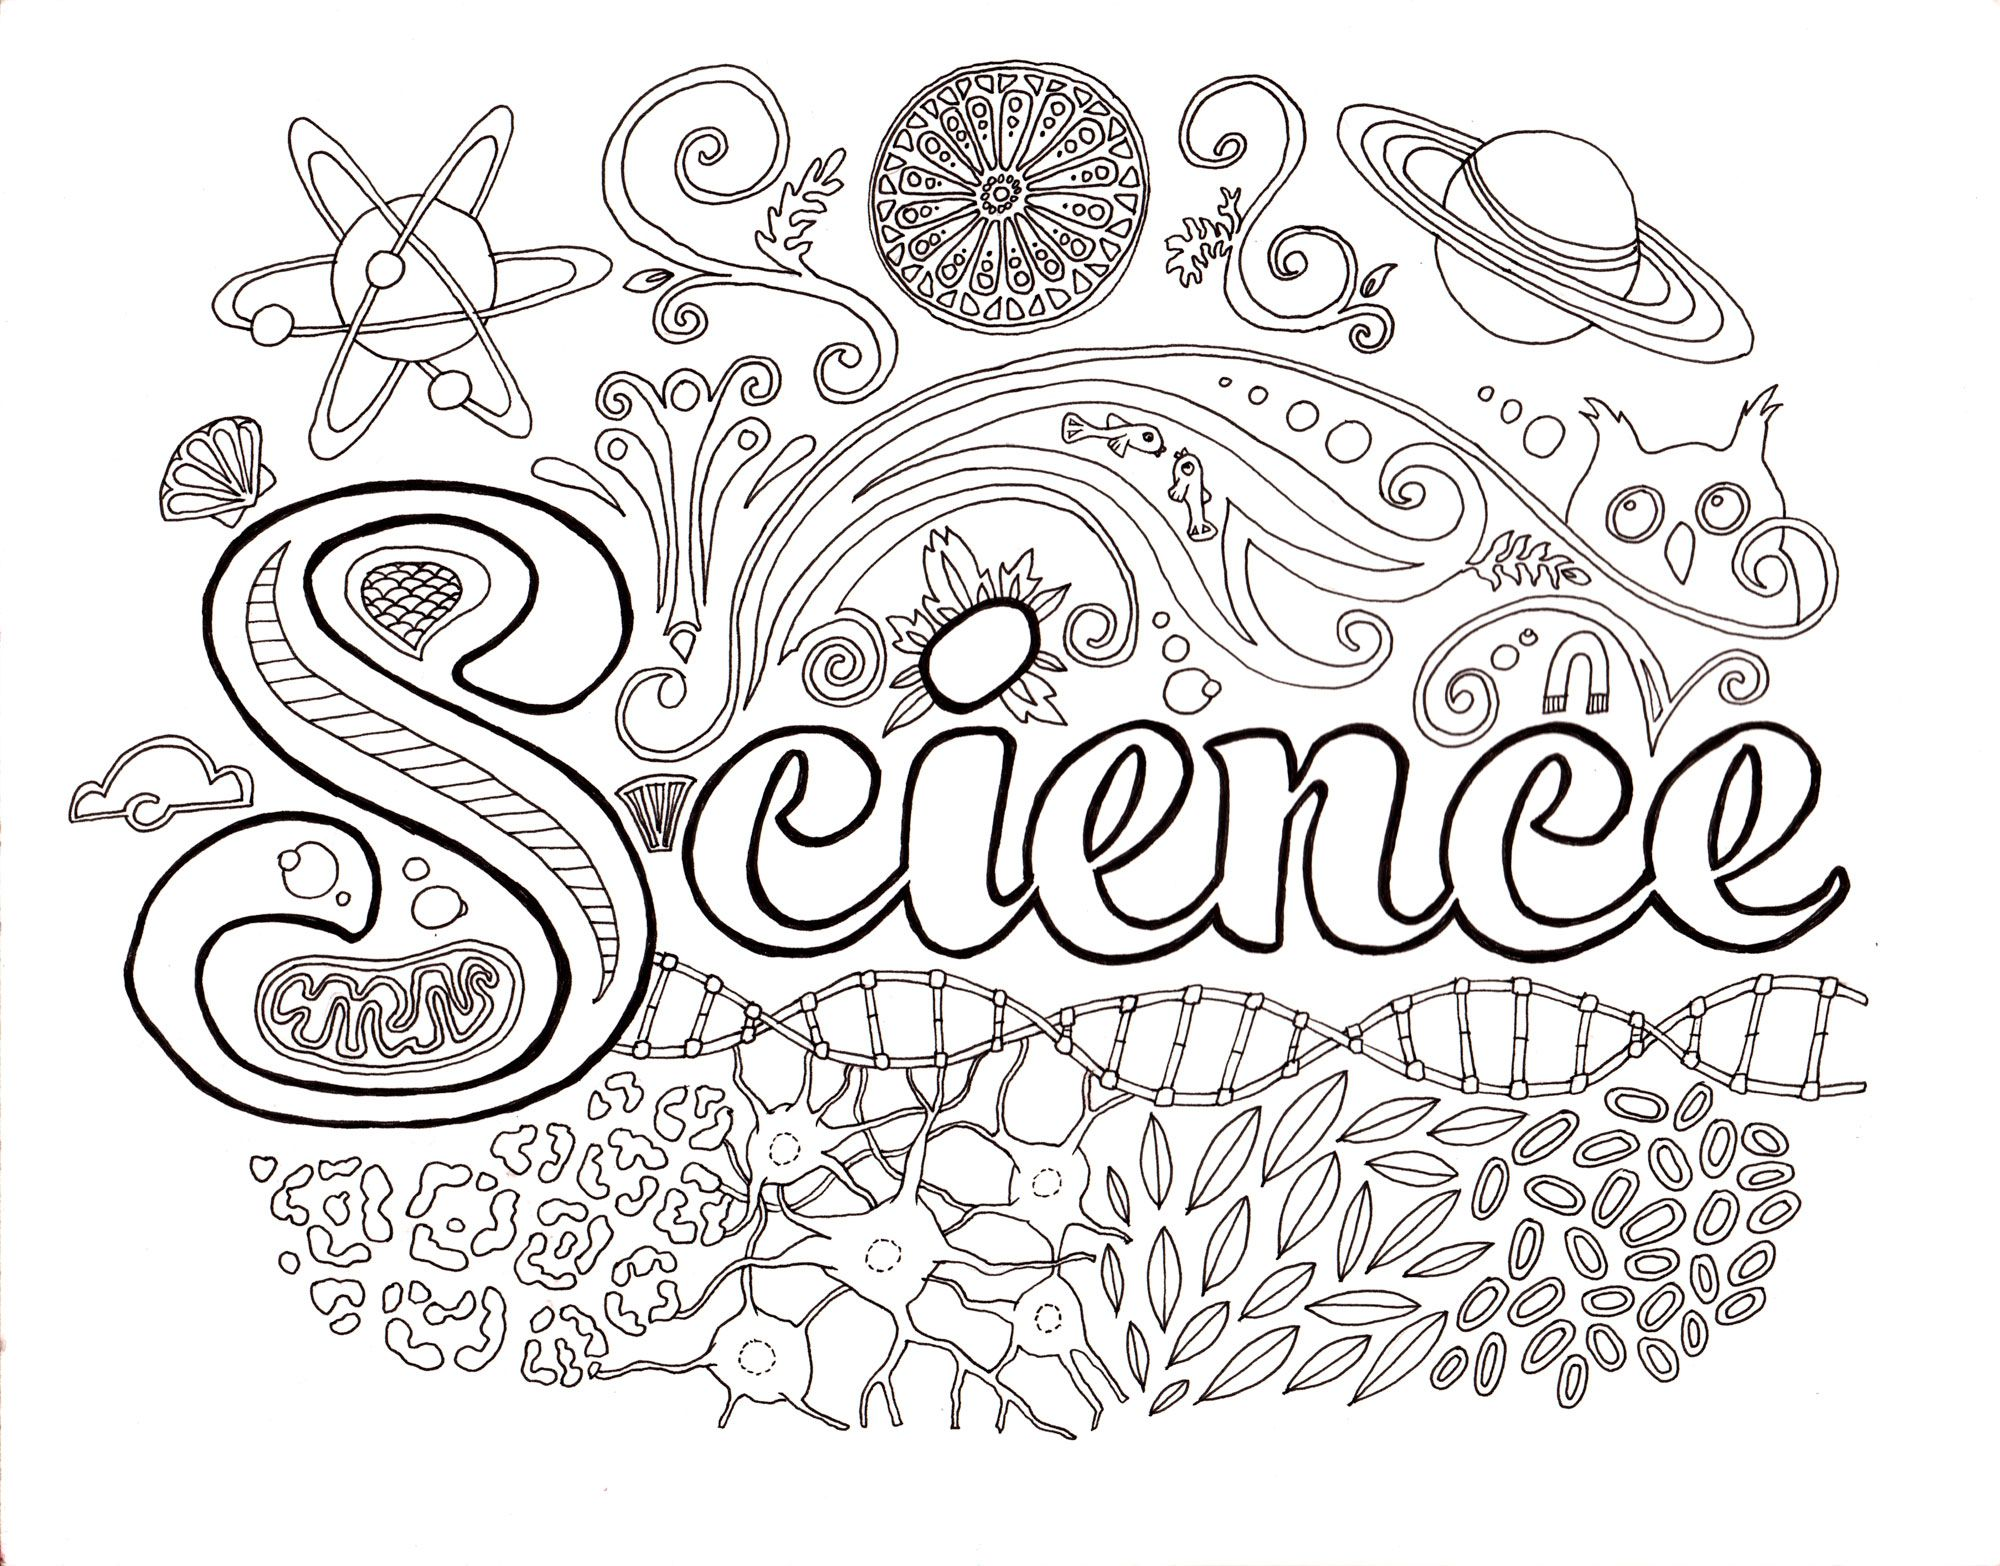 science coloring page getcoloringpagescom | science | Pinterest ...